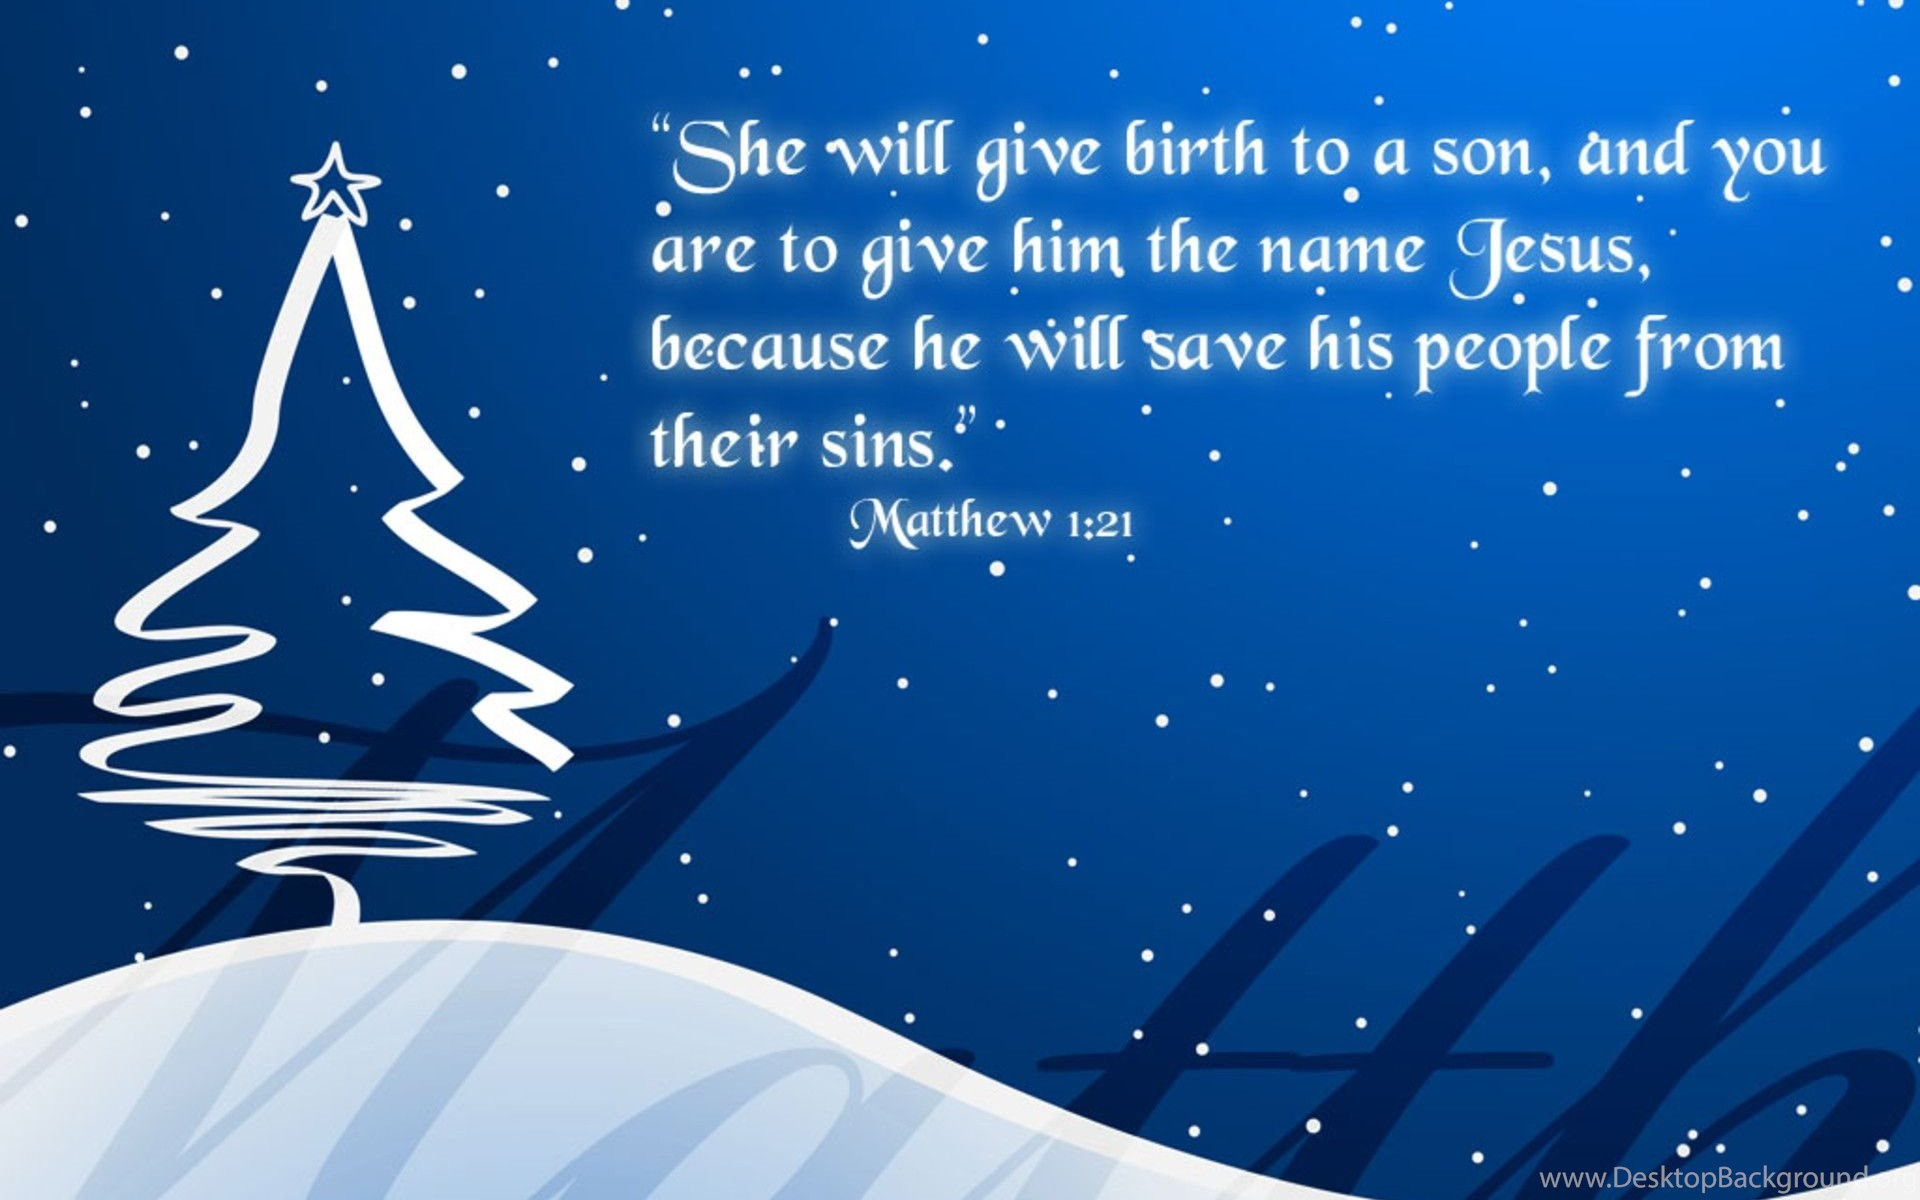 Christian Christmas Wallpaper Widescreen